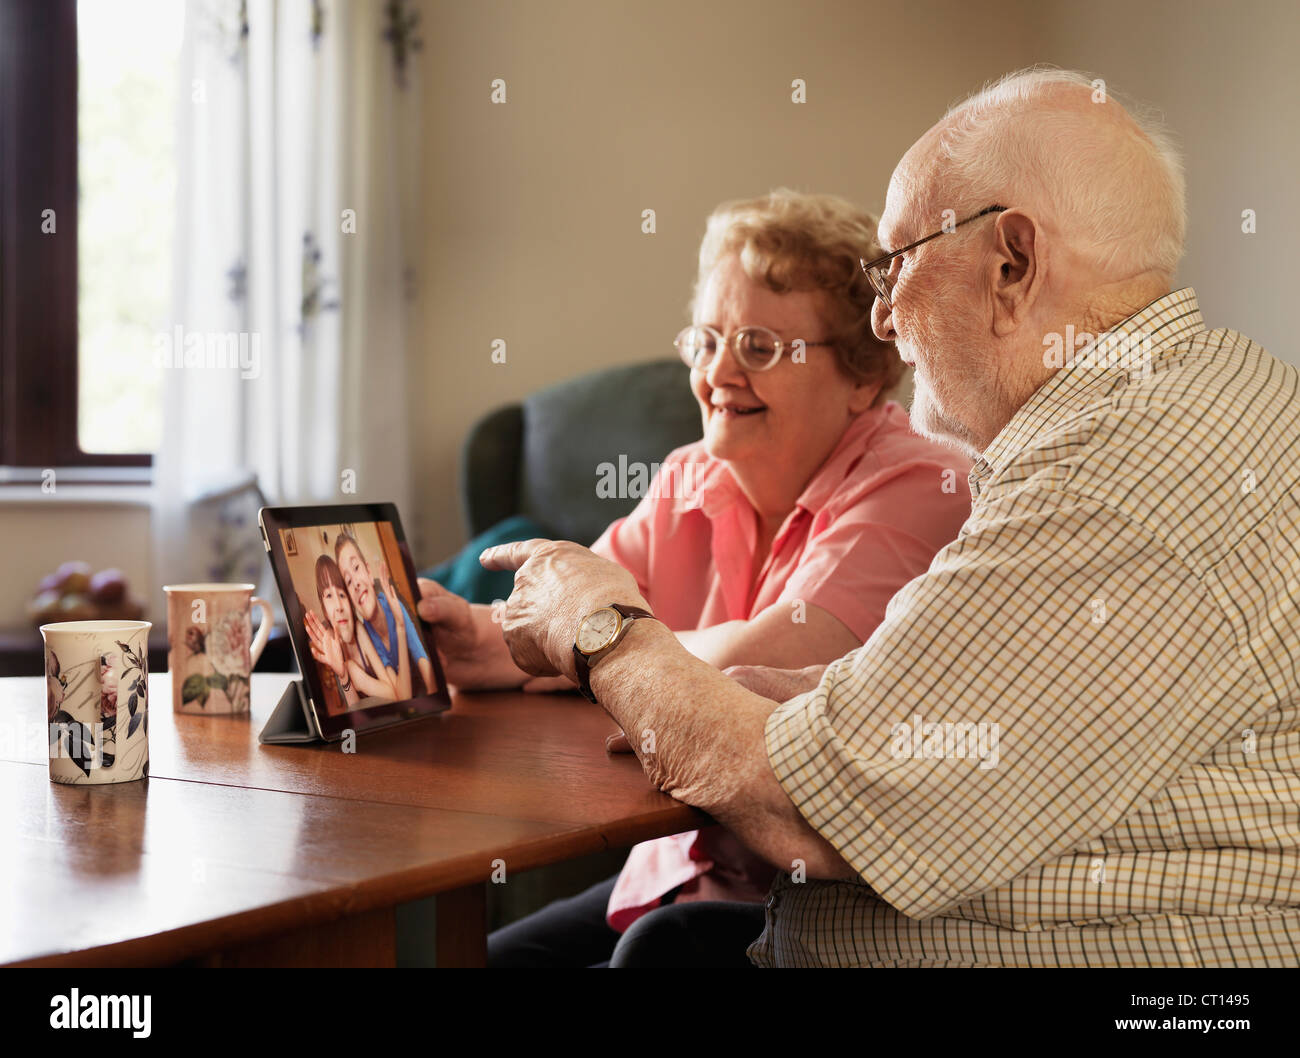 Older couple video chatting with family - Stock Image